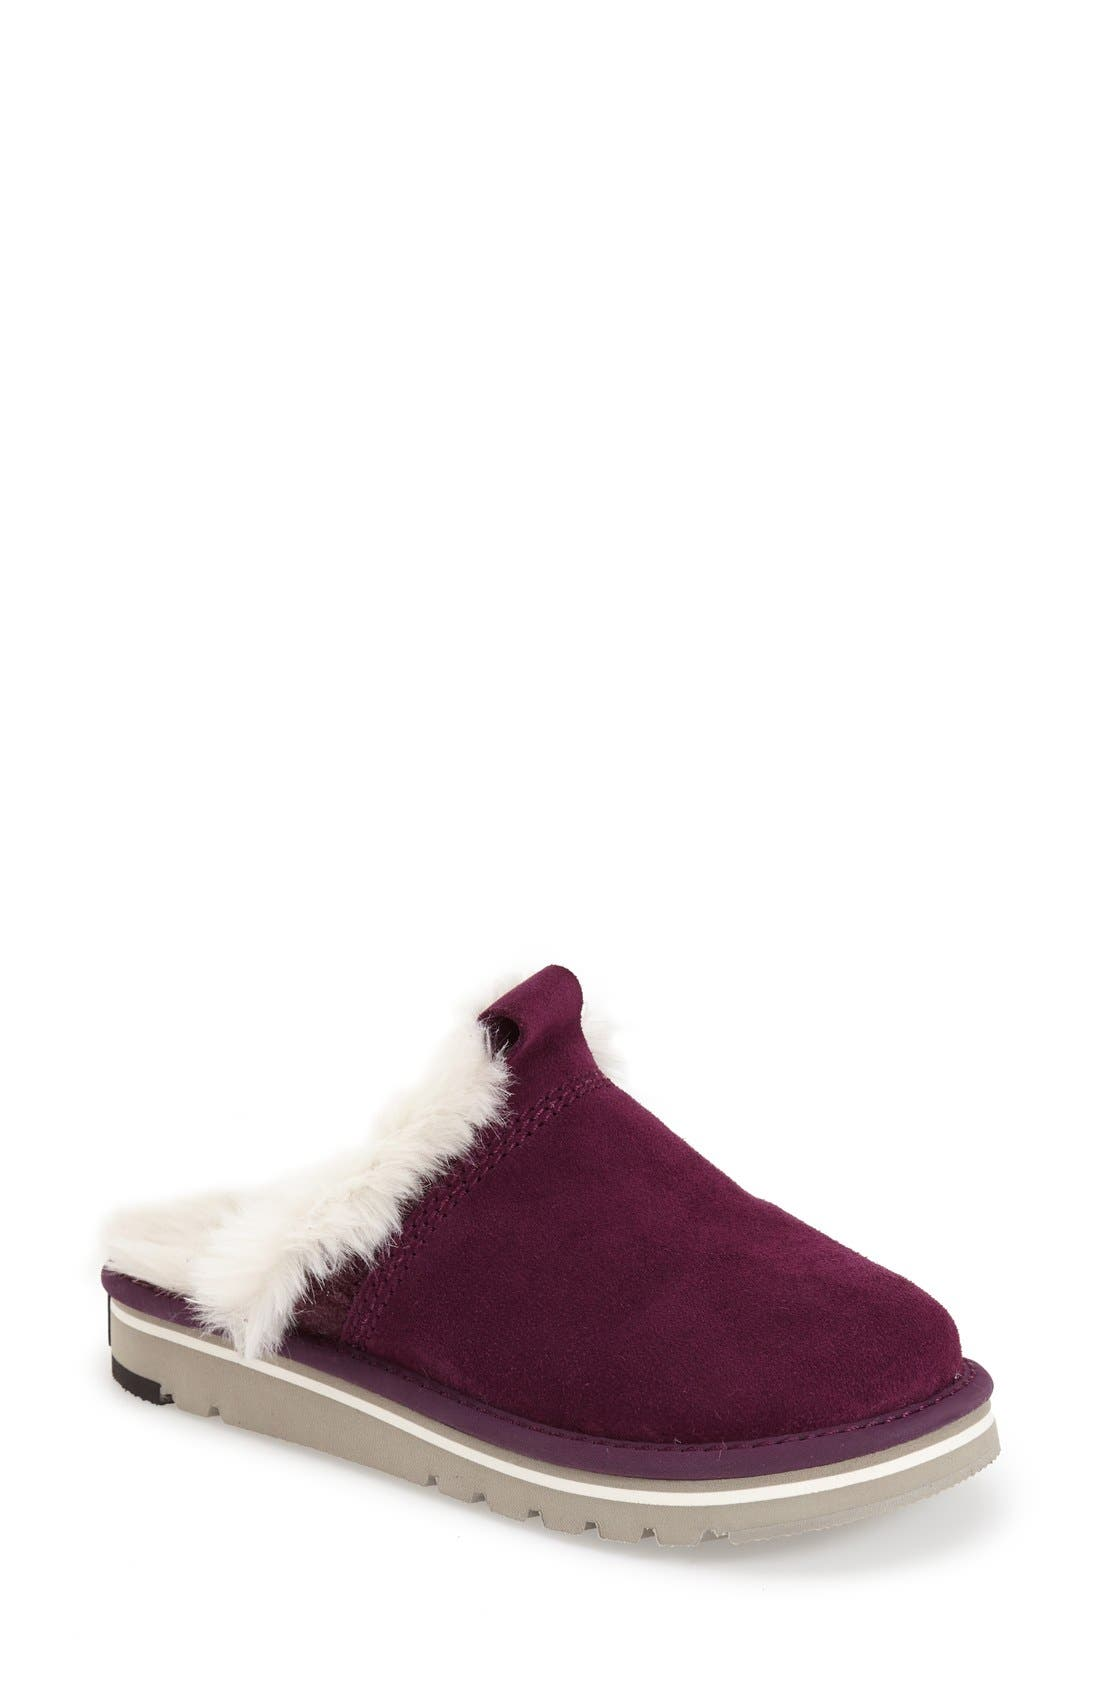 Alternate Image 1 Selected - SOREL 'The Campus™' Slipper (Women)